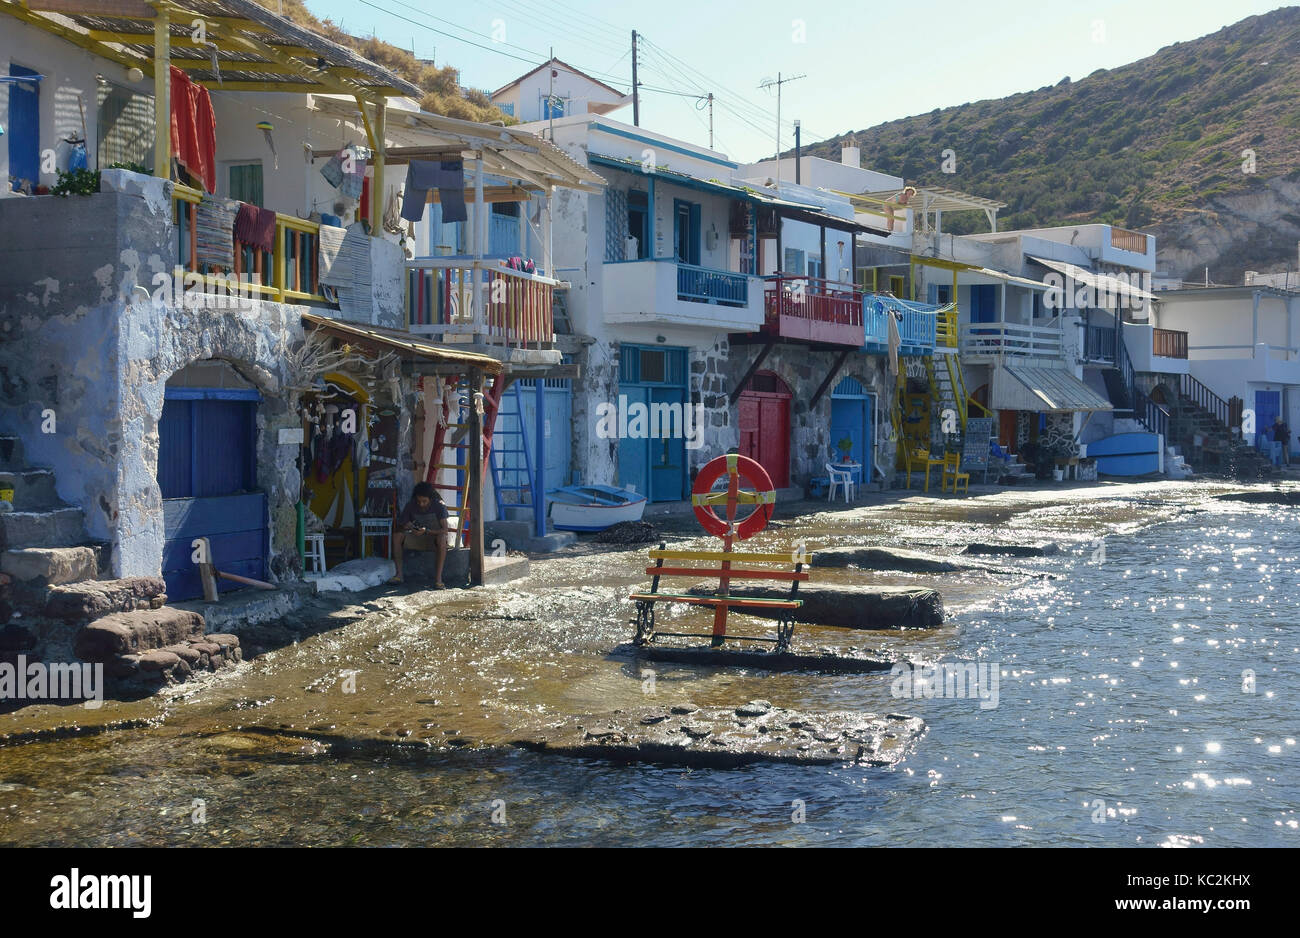 The boat houses on Klima front Milos Greece - Stock Image